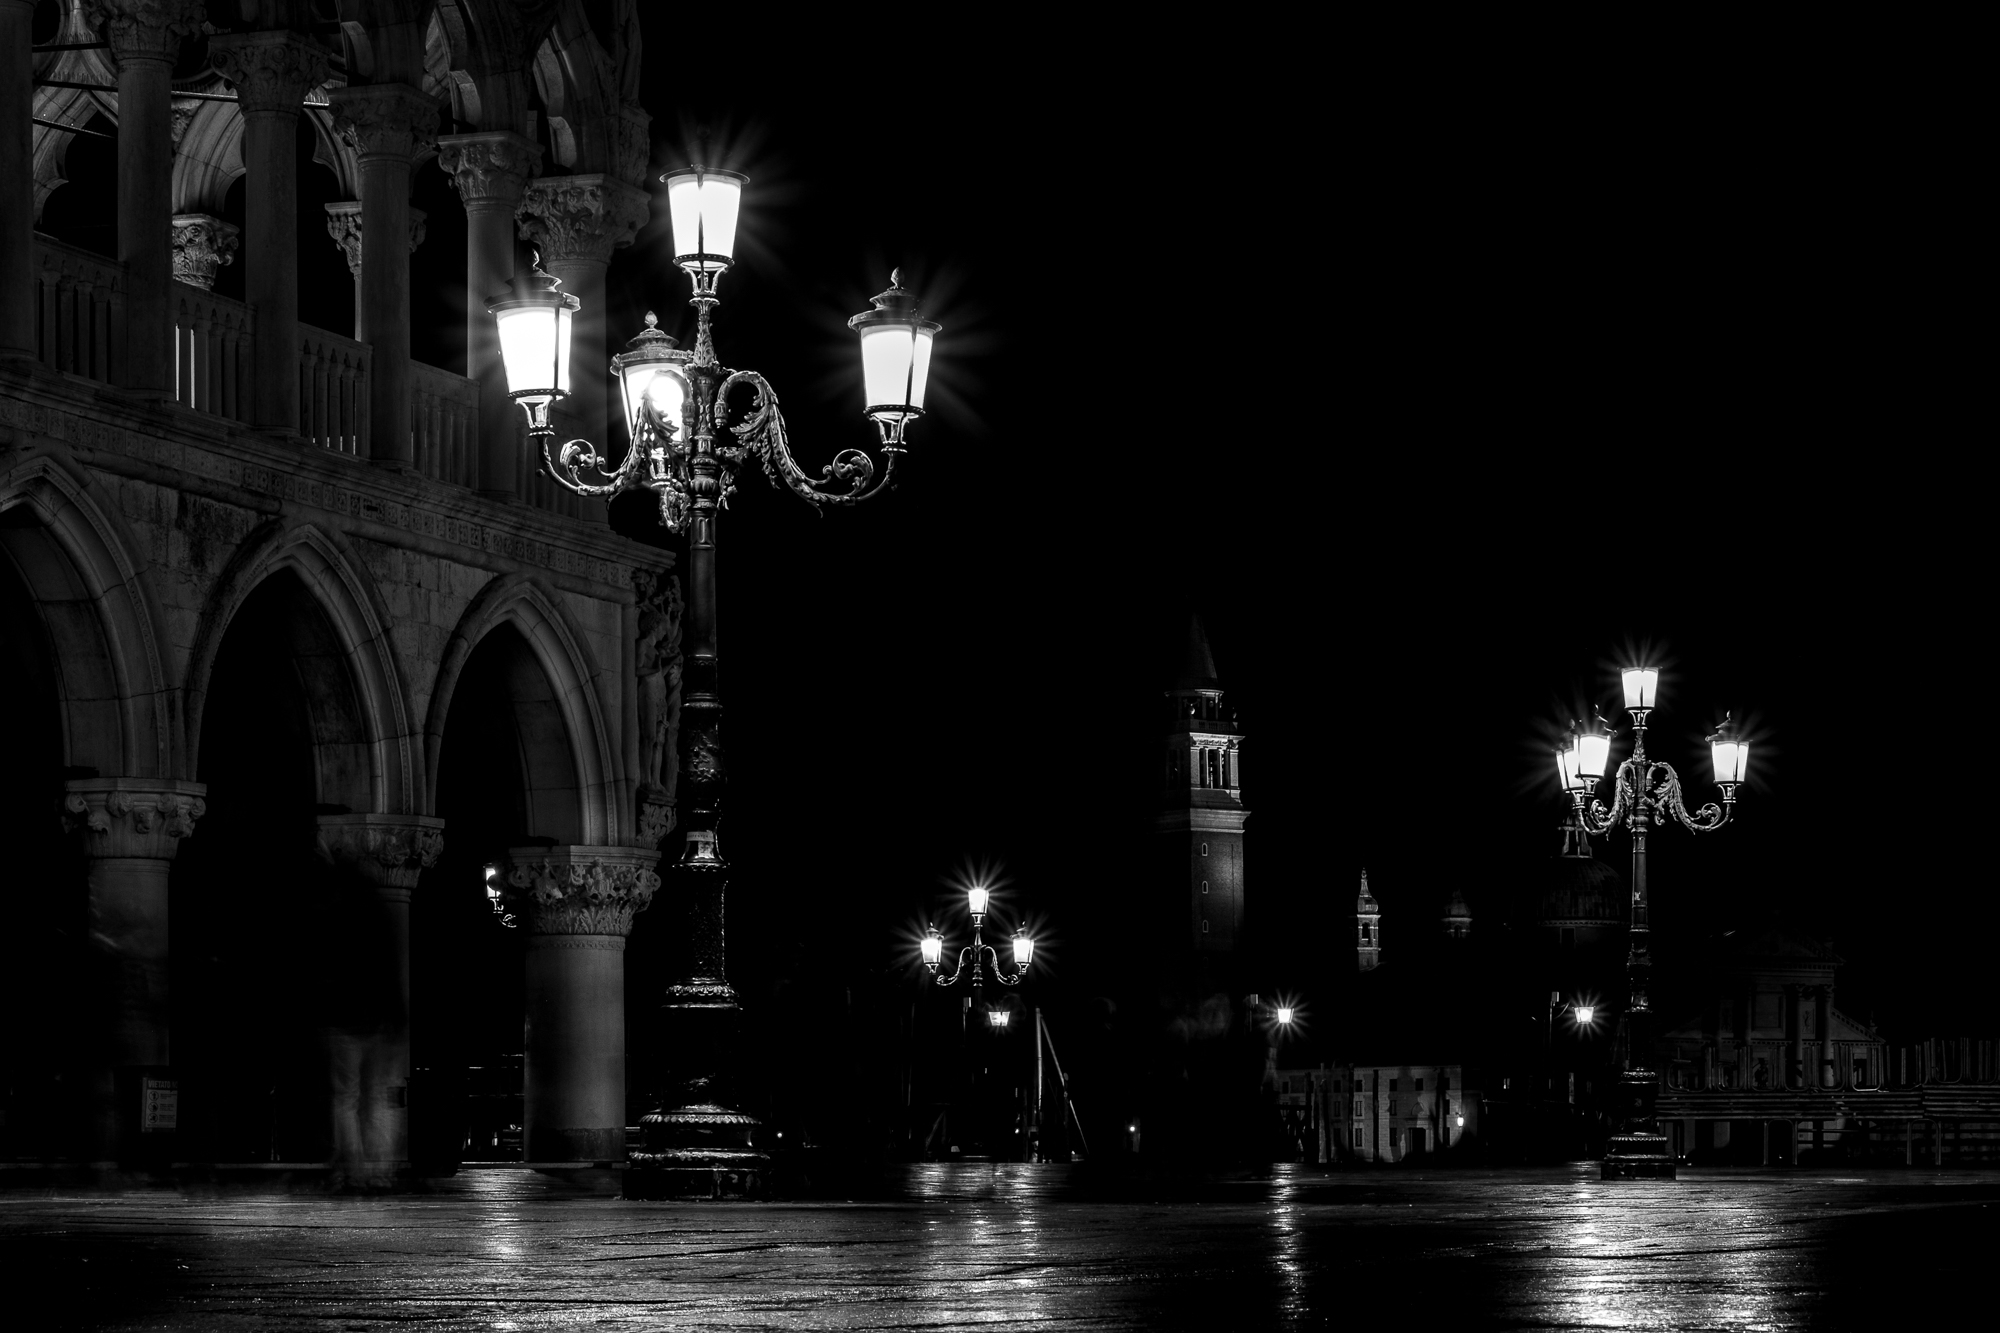 A photo of Piazza San Marco and San Marco Basin in Venice at night taken by Trevor Sherwin